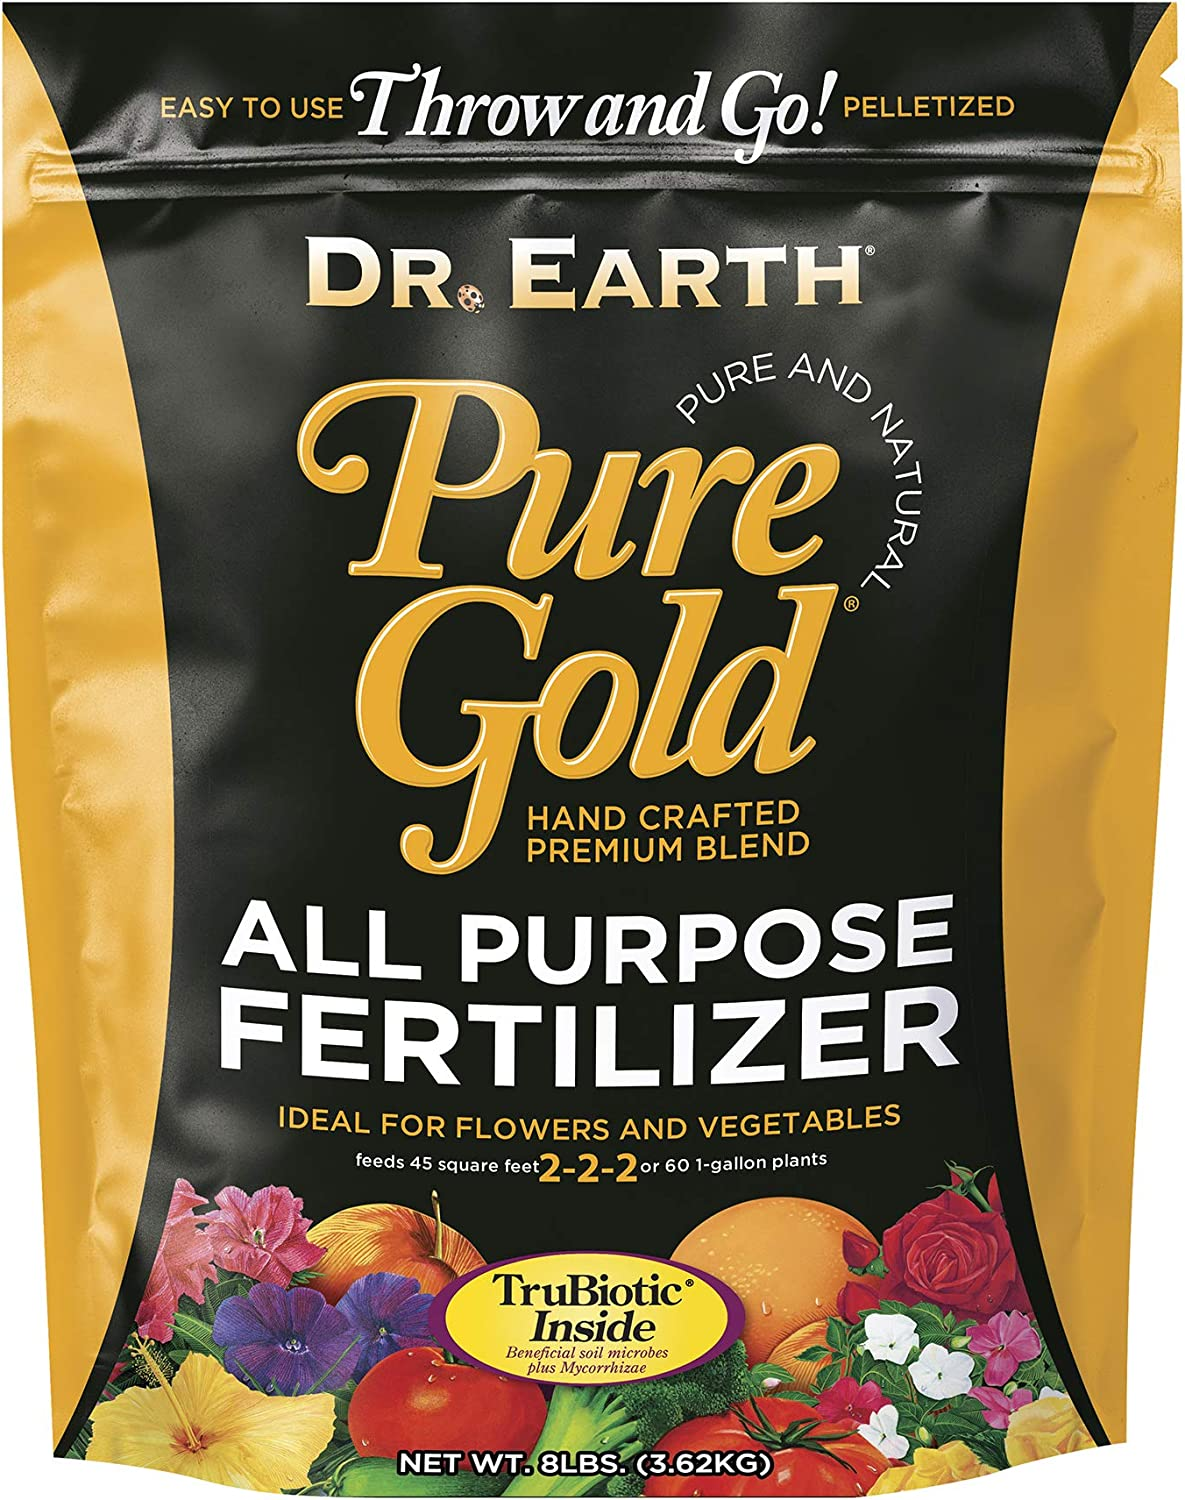 Dr. Earth Pure Gold All Purpose Fertilizer 8lb